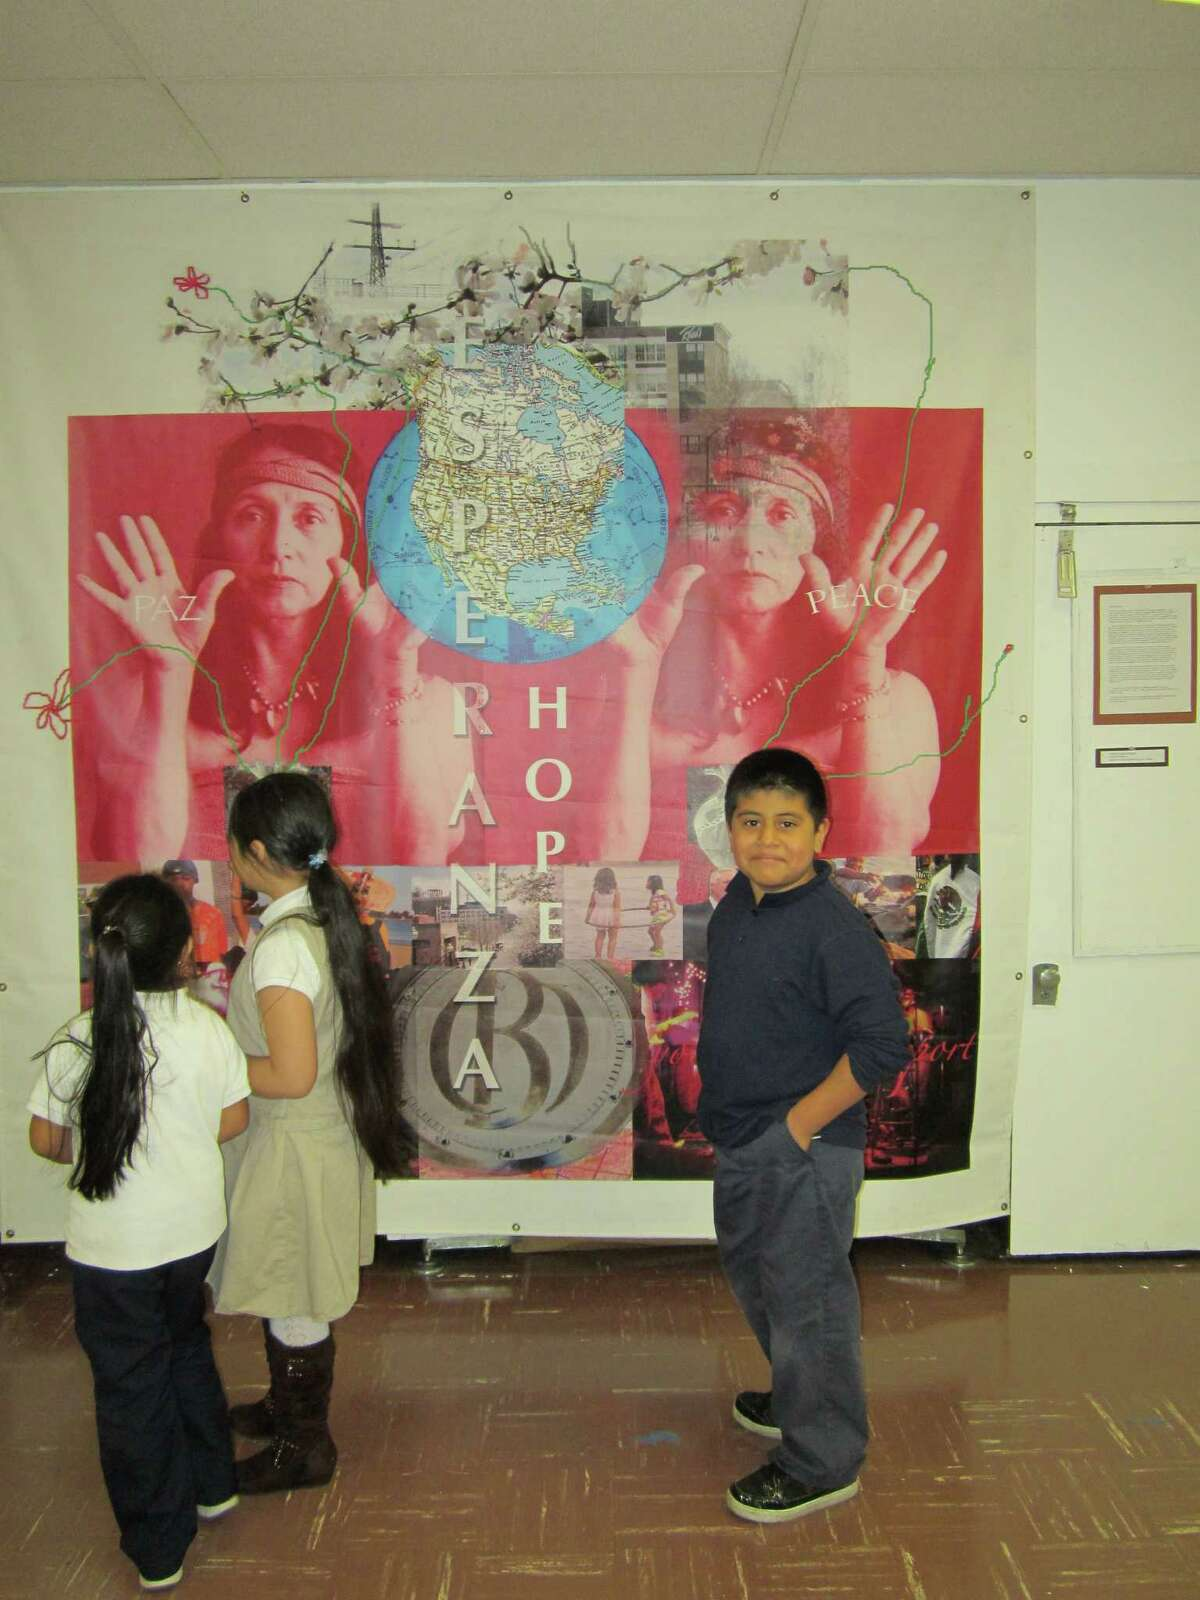 A group of Roosevelt School students view a mural banner by Bridgeport artist Yolanda Petrocelli in the school's art gallery.